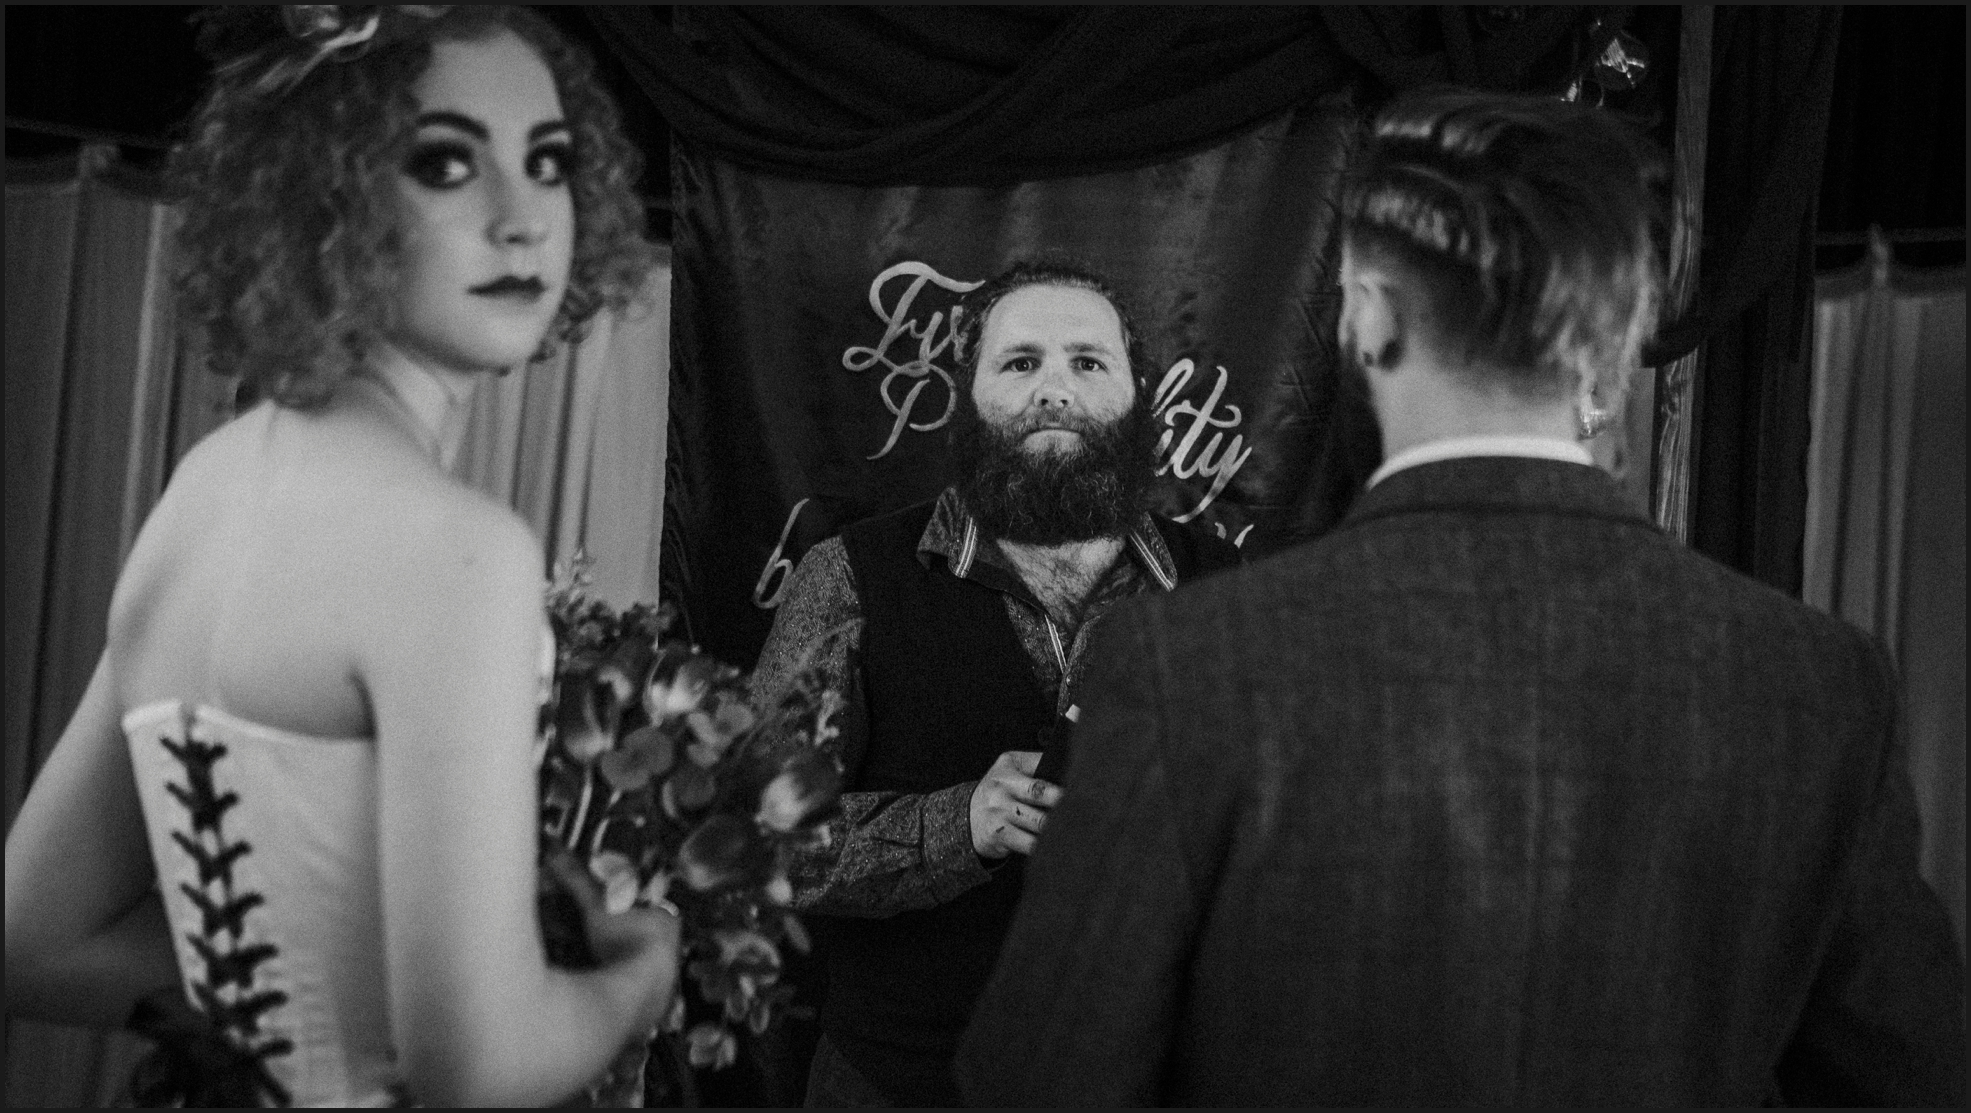 ceremony, wedding ceremony, bride, groom, celebrant, Dalston Heights, London, Steampunk, black and white